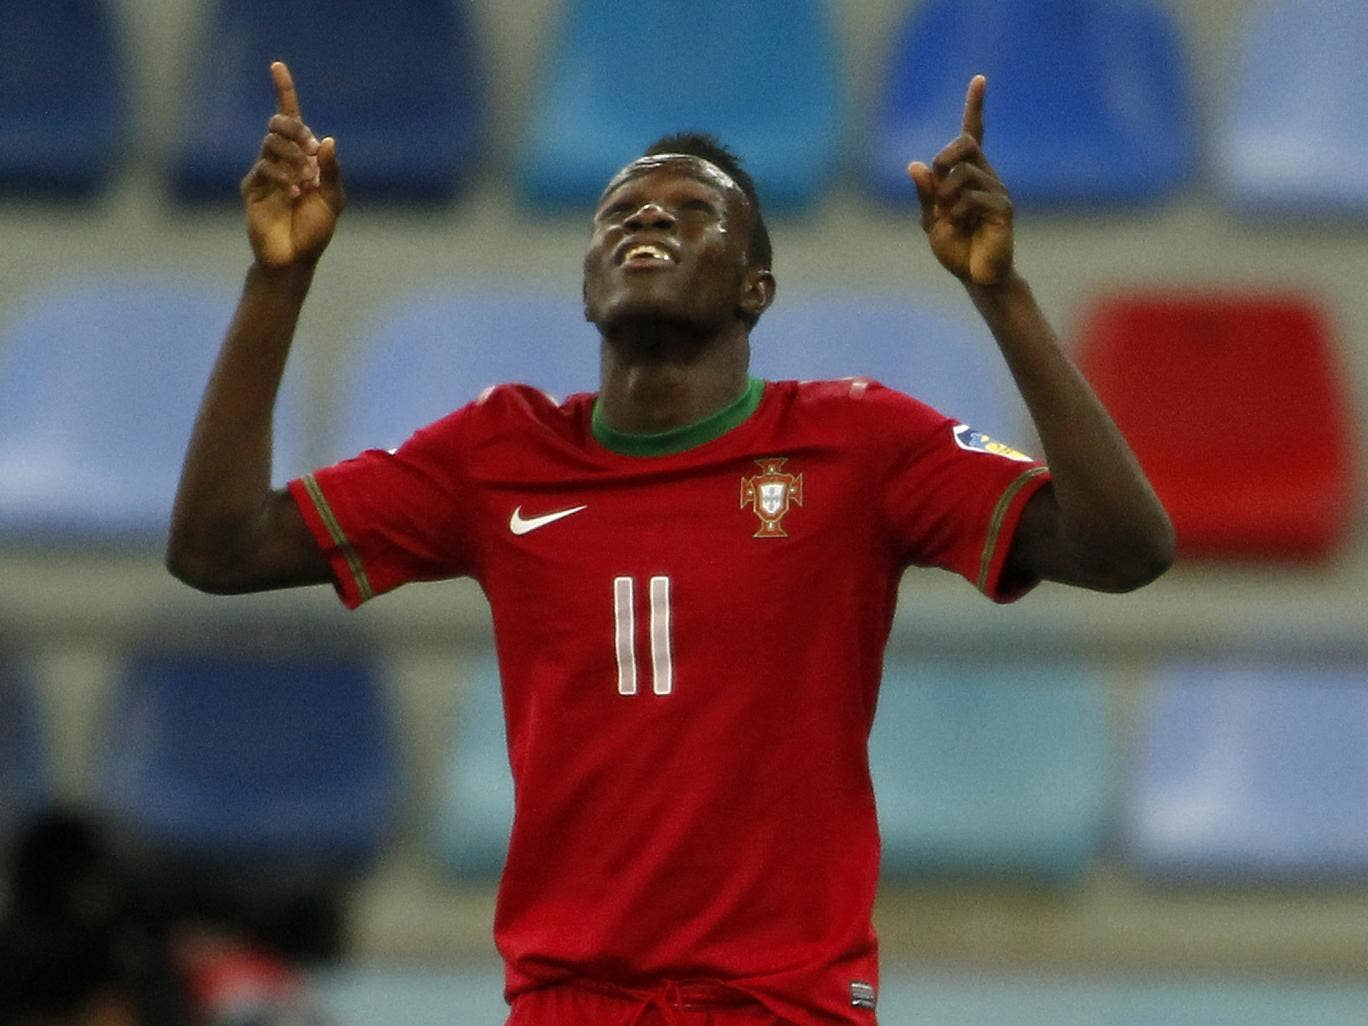 Sporting Lisbon winger Bruma in action for Portugal Under-20's in the recent U-20's World Cup